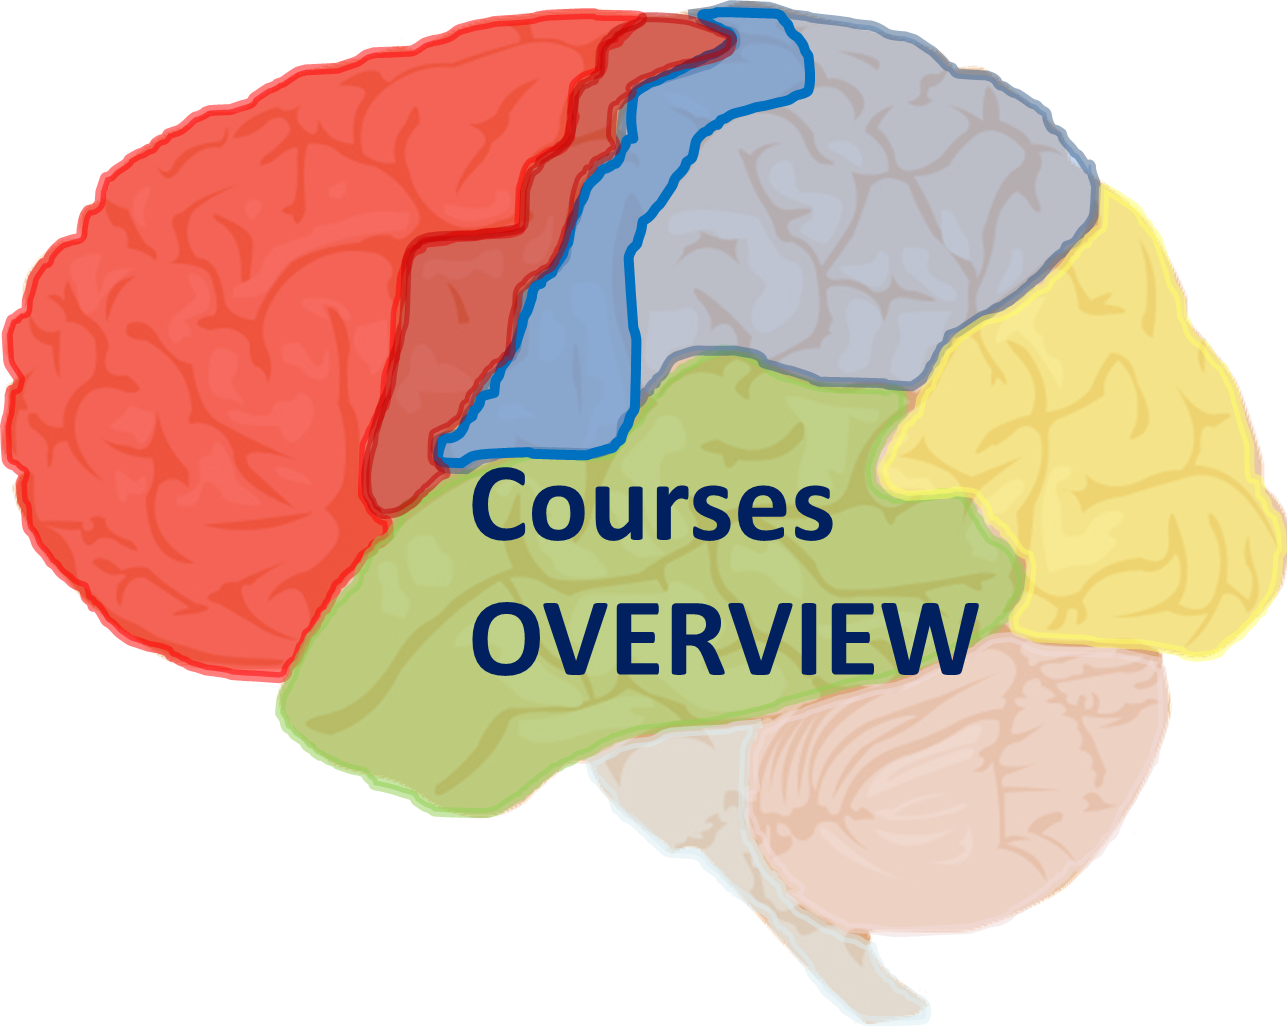 courses_overview_logo